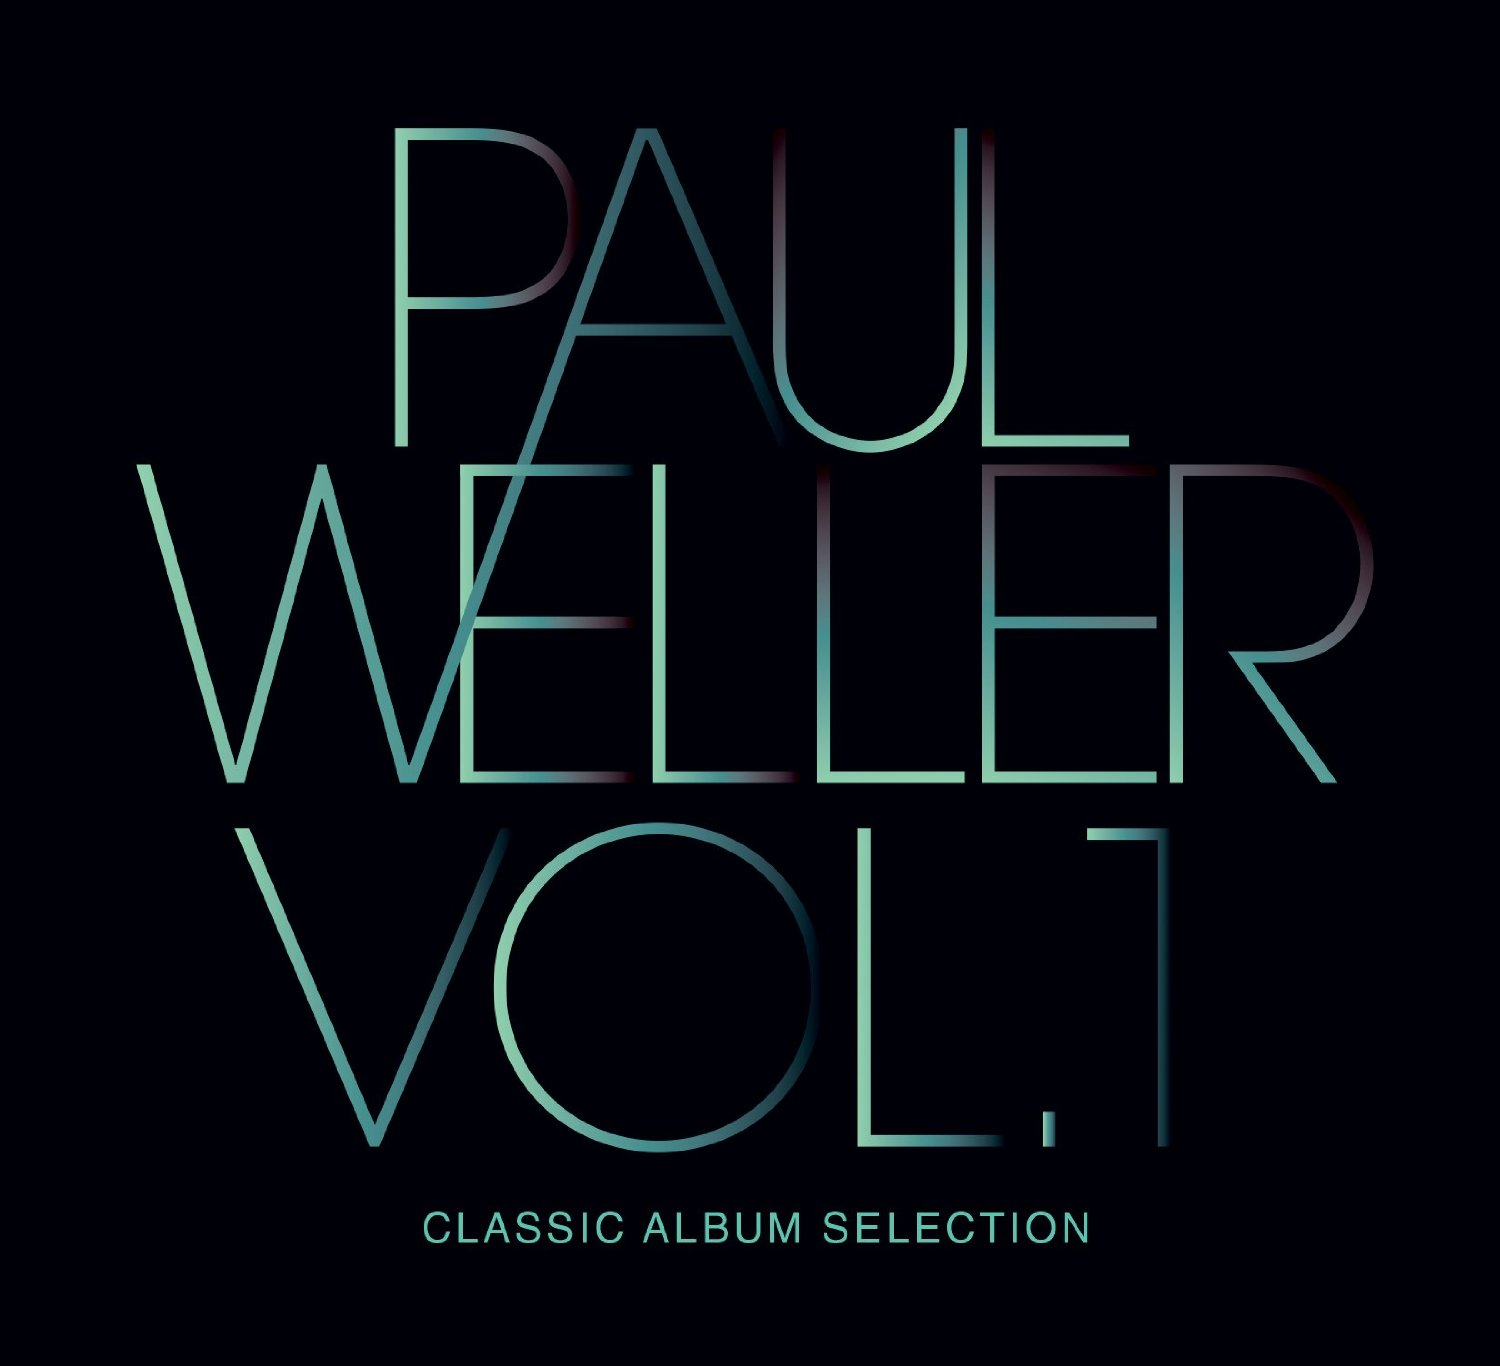 Paul Weller / Classic Album Selection Vol. 1 box set